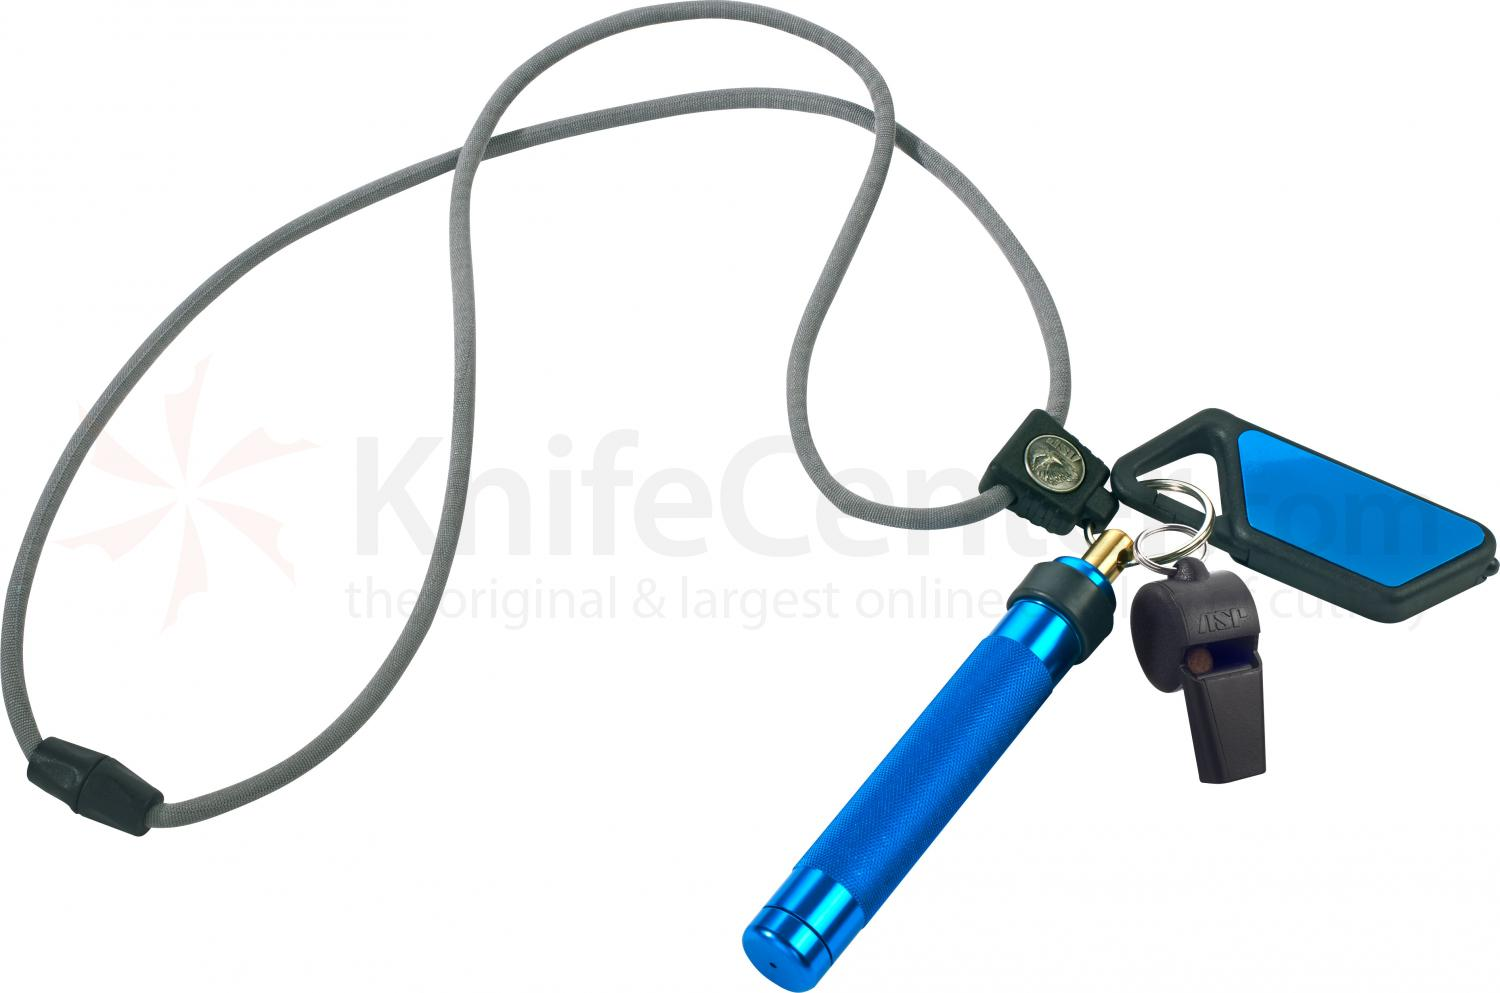 ASP Palm Defender Safety System (Blue) 4 inch Keyring Baton Pepper Spray, Whistle, Sapphire LED Light, Lanyard